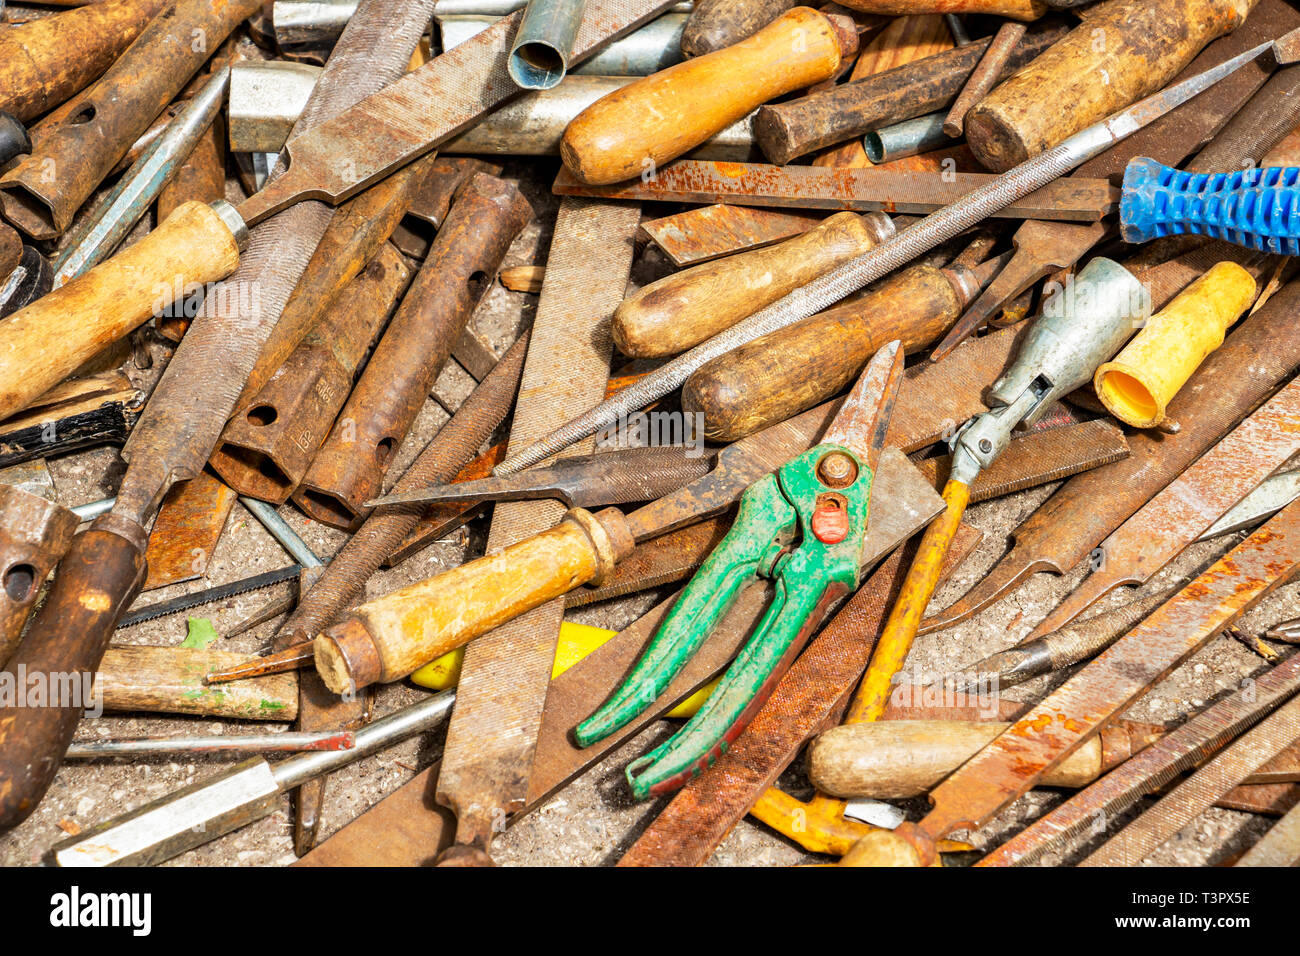 Disorderly scattered various hand work tools, files and rasps, hand tool texture background - Stock Image